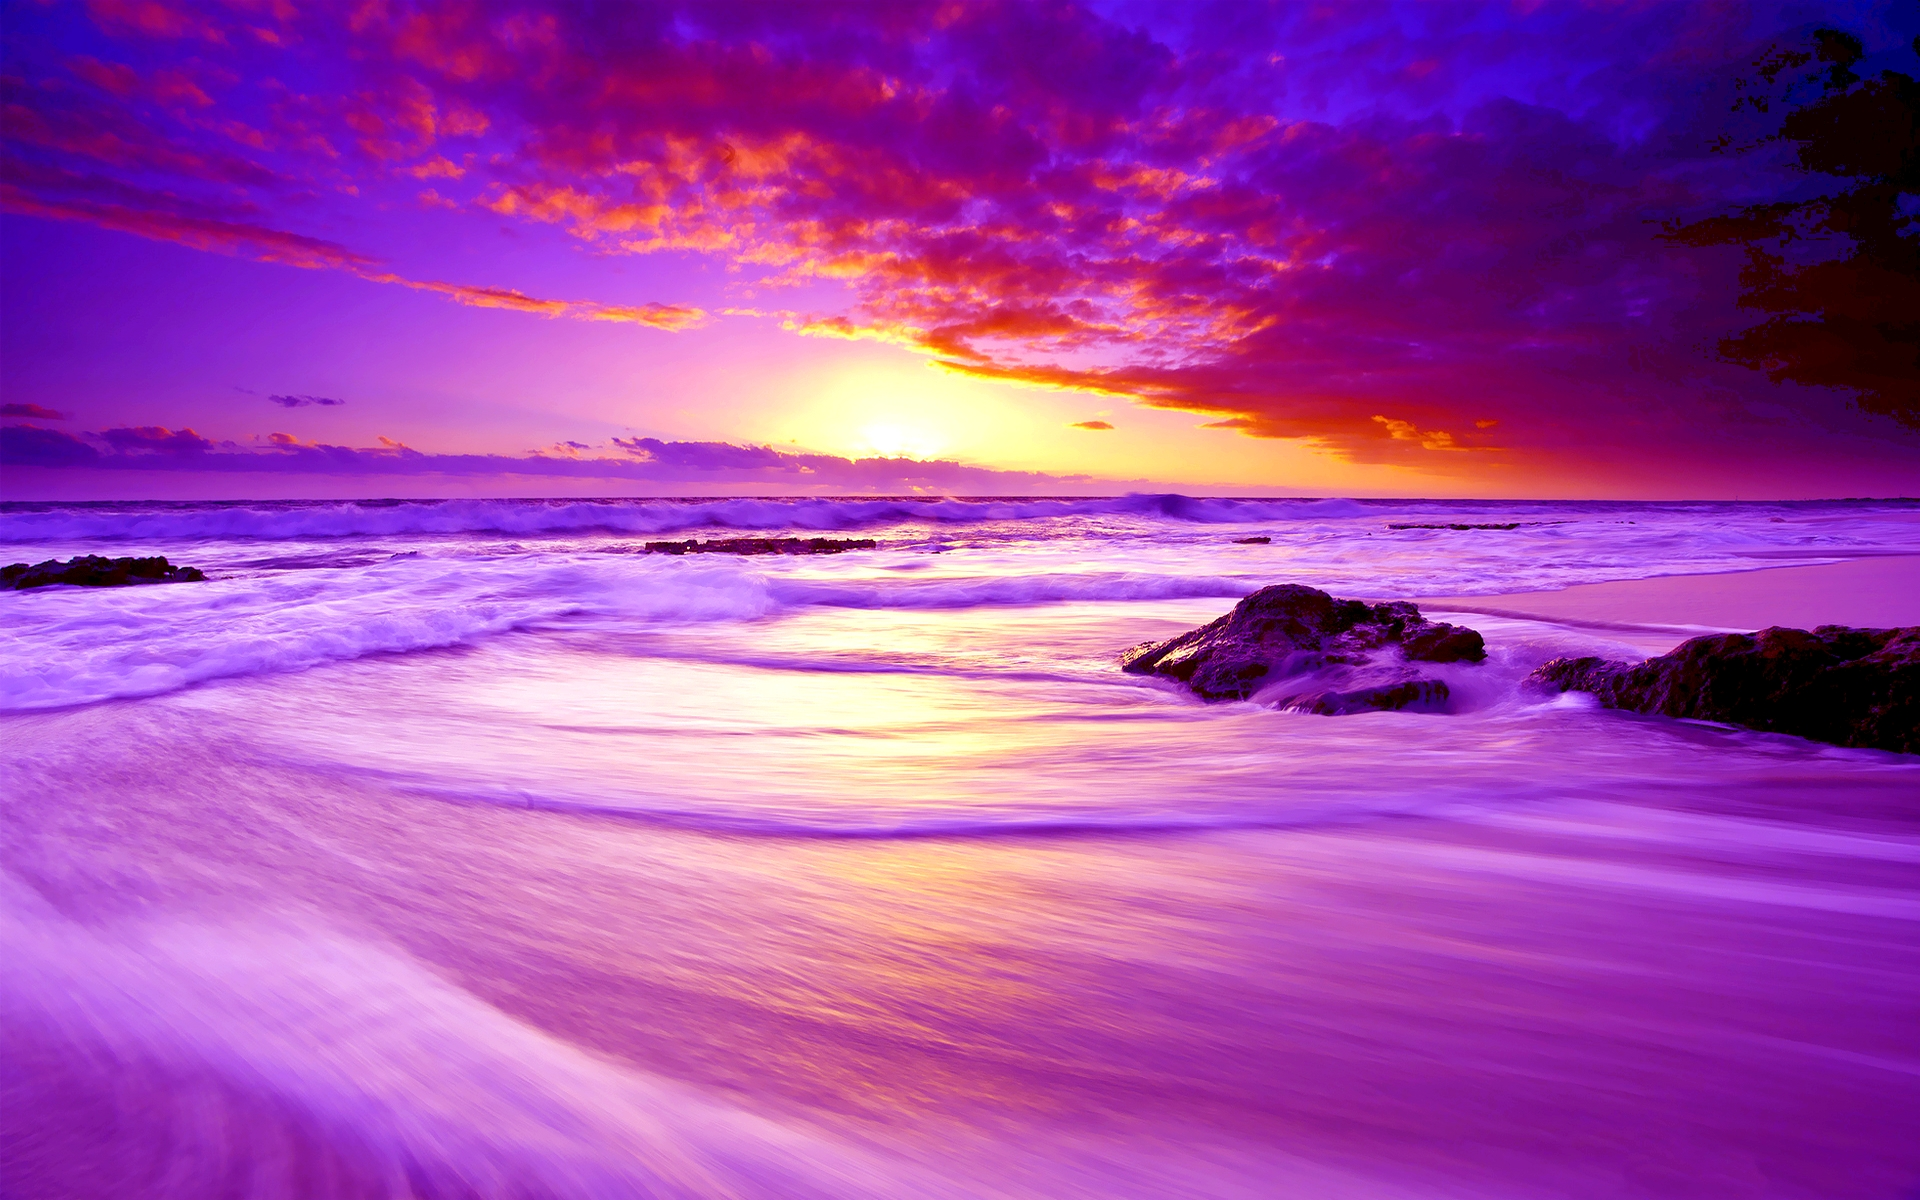 Purple Sunset Paradise 531.21 Kb